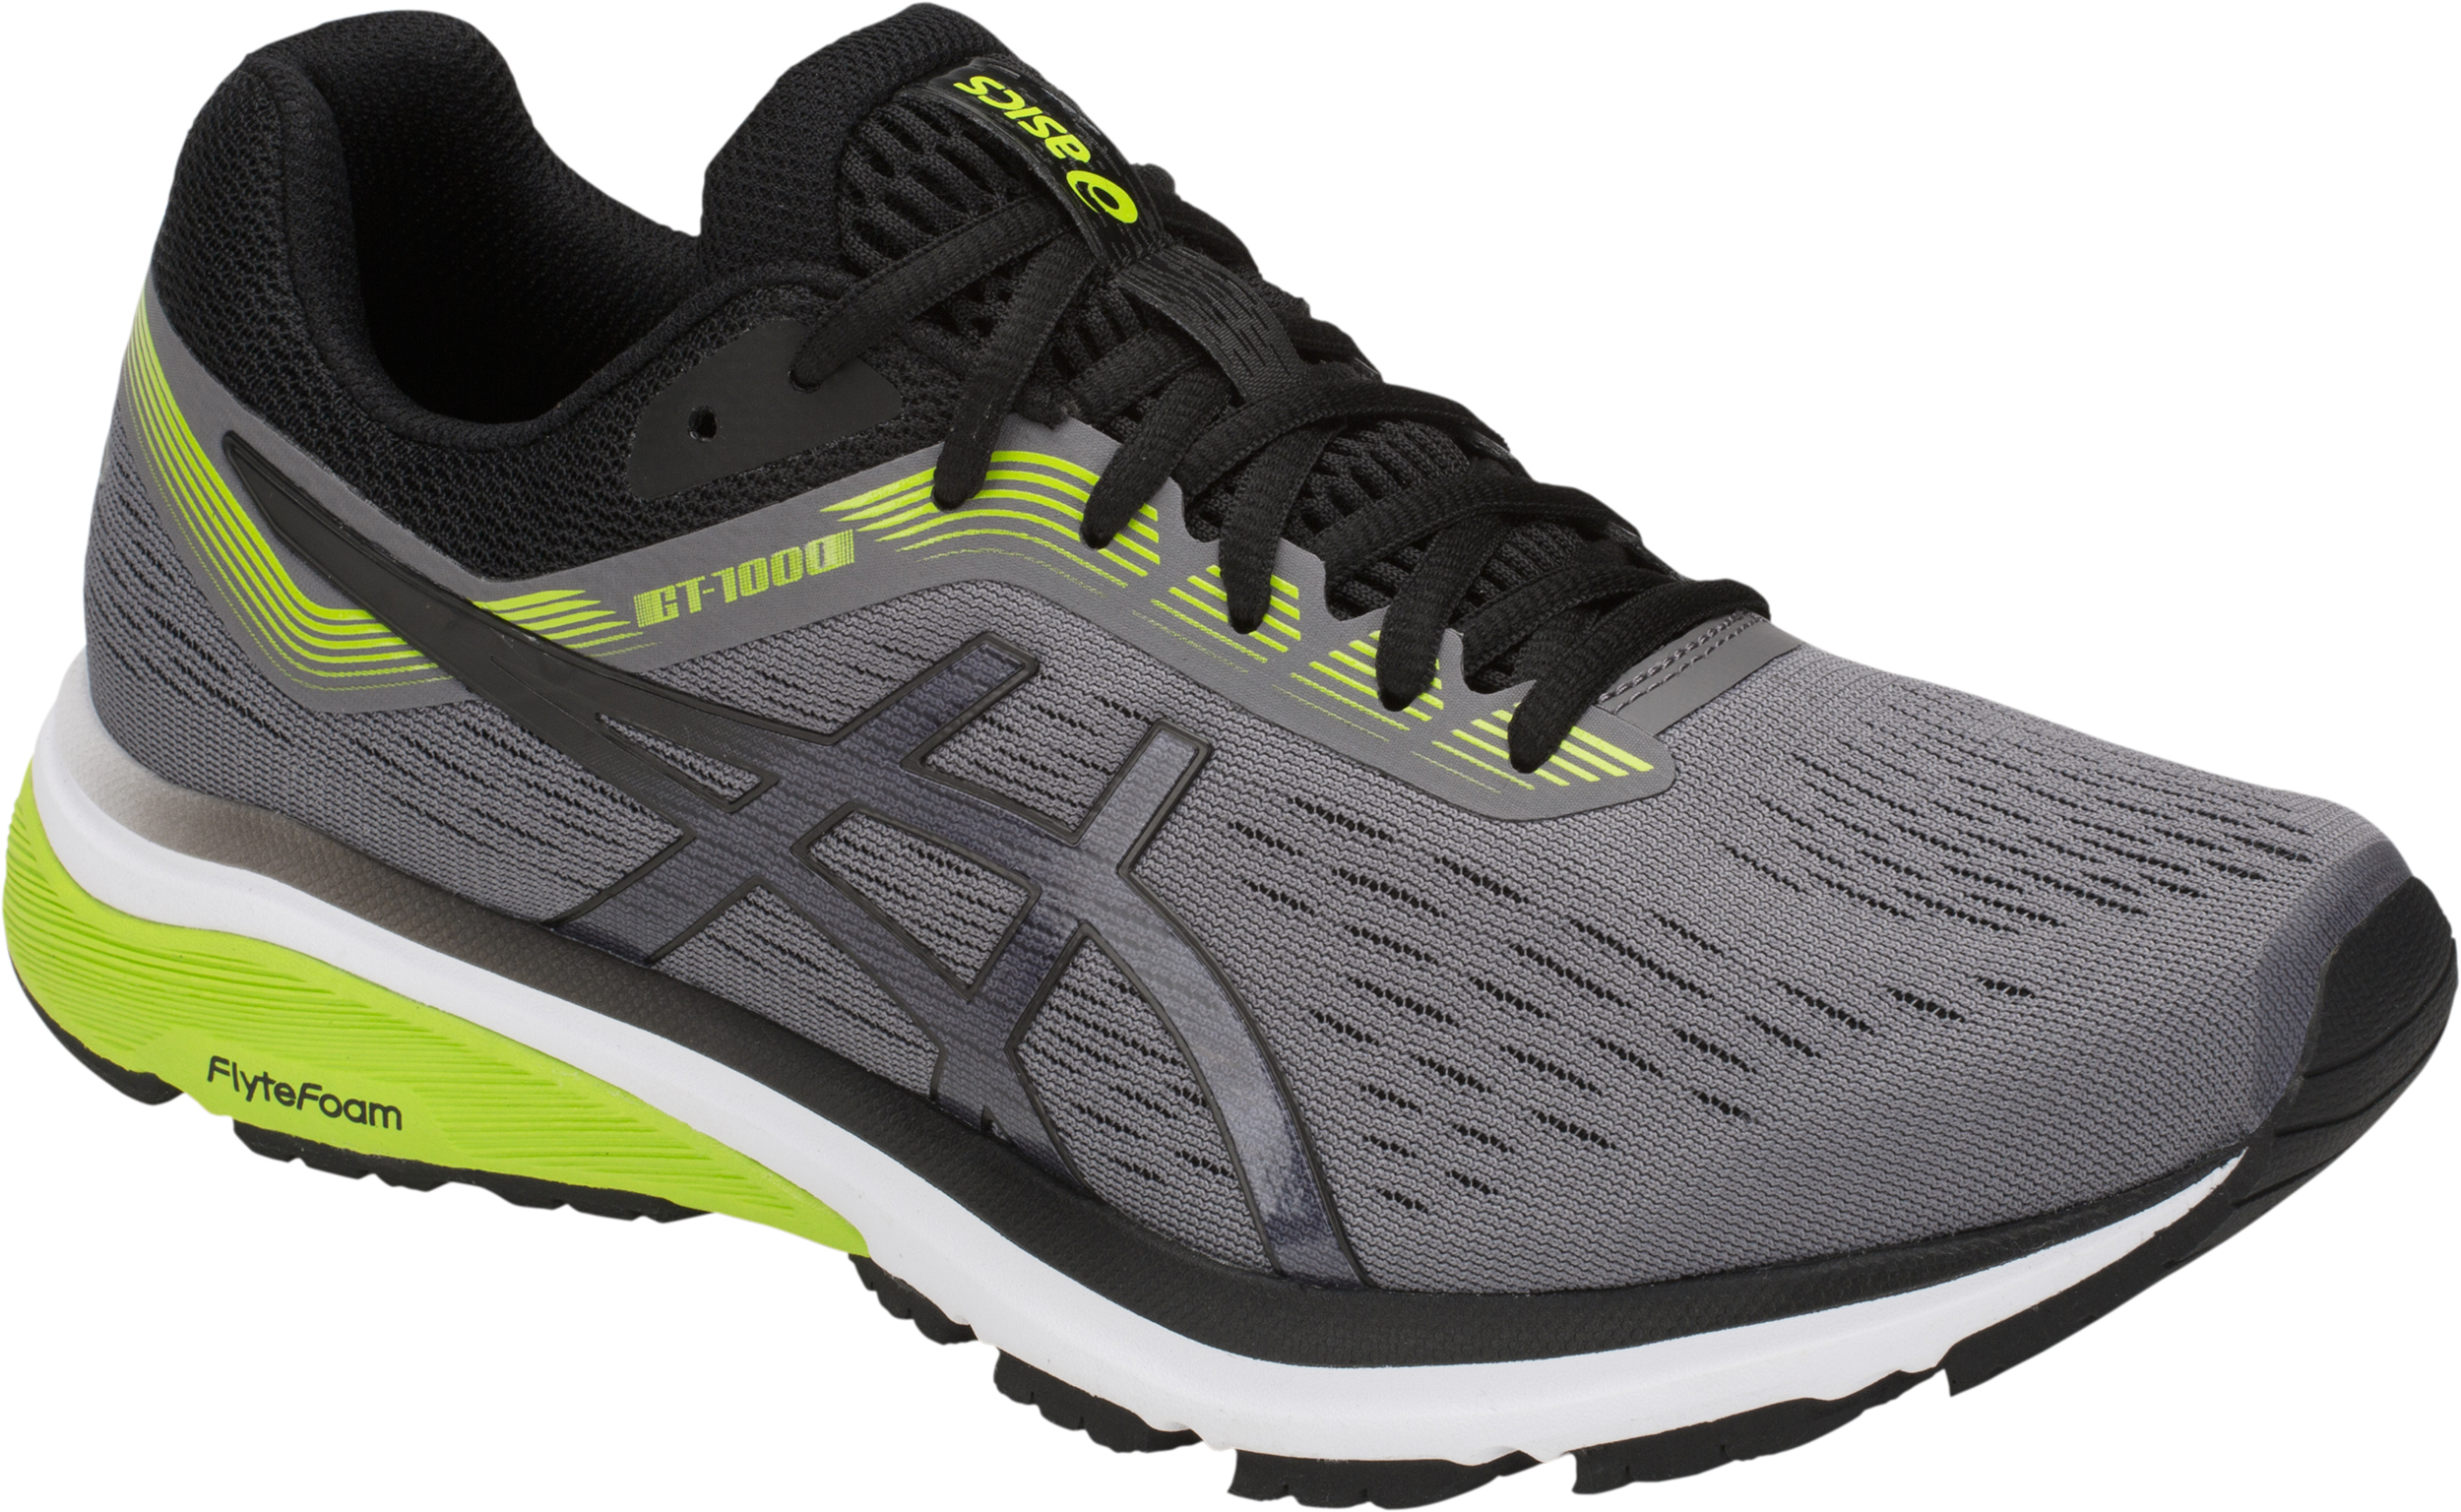 33eabca5335e Asics GT-1000 7 Road Running Shoes - Men s